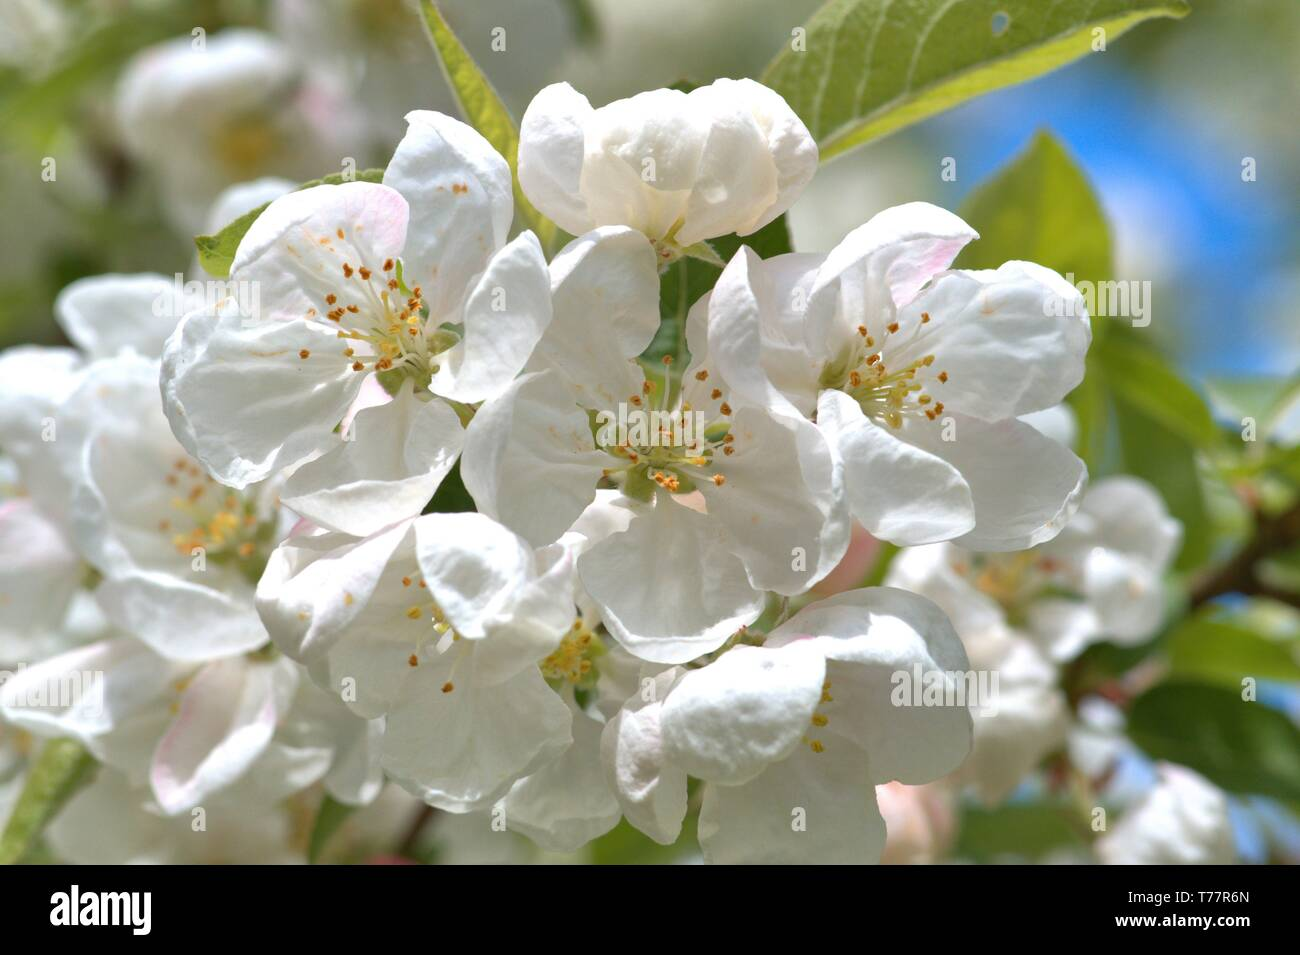 Schleswig, Deutschland. 05th May, 2019. 05.05.2019, Schleswig-Holstein, Schleswig: Detail of a flowering ornamental apple Everest, Malus Everest on a public area of the city of Schleswig. Order: rose-like (Rosales), family: rose-growing (Rosaceae), tribe: pyreae, sub-tribe: pome-fruit waxes (Pyrinae), genus: apple   usage worldwide Credit: dpa/Alamy Live News - Stock Image